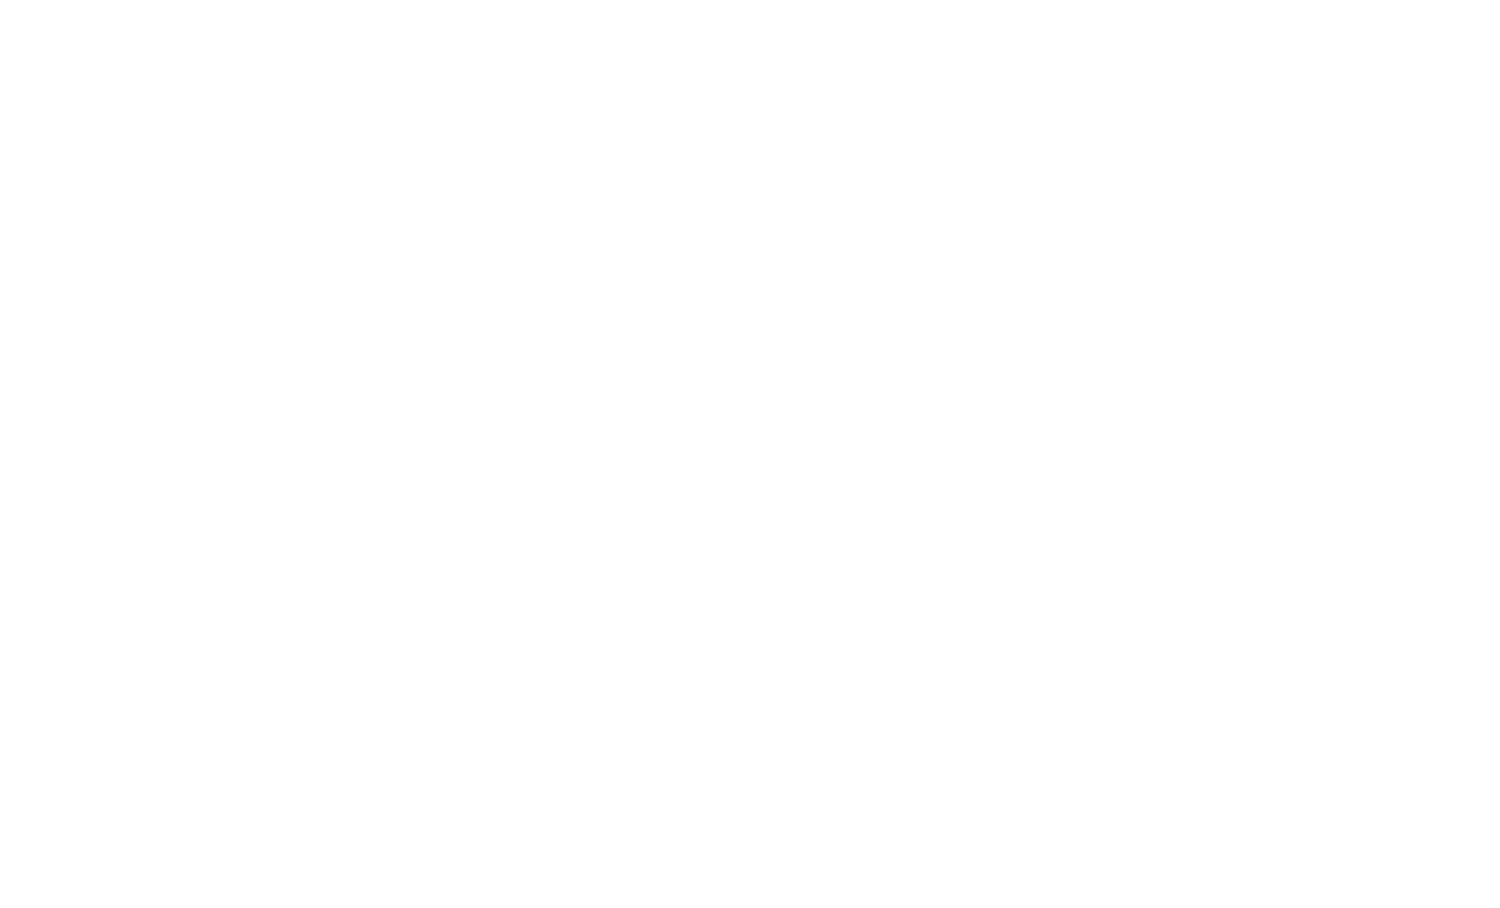 Babcock Laboratories, Inc.